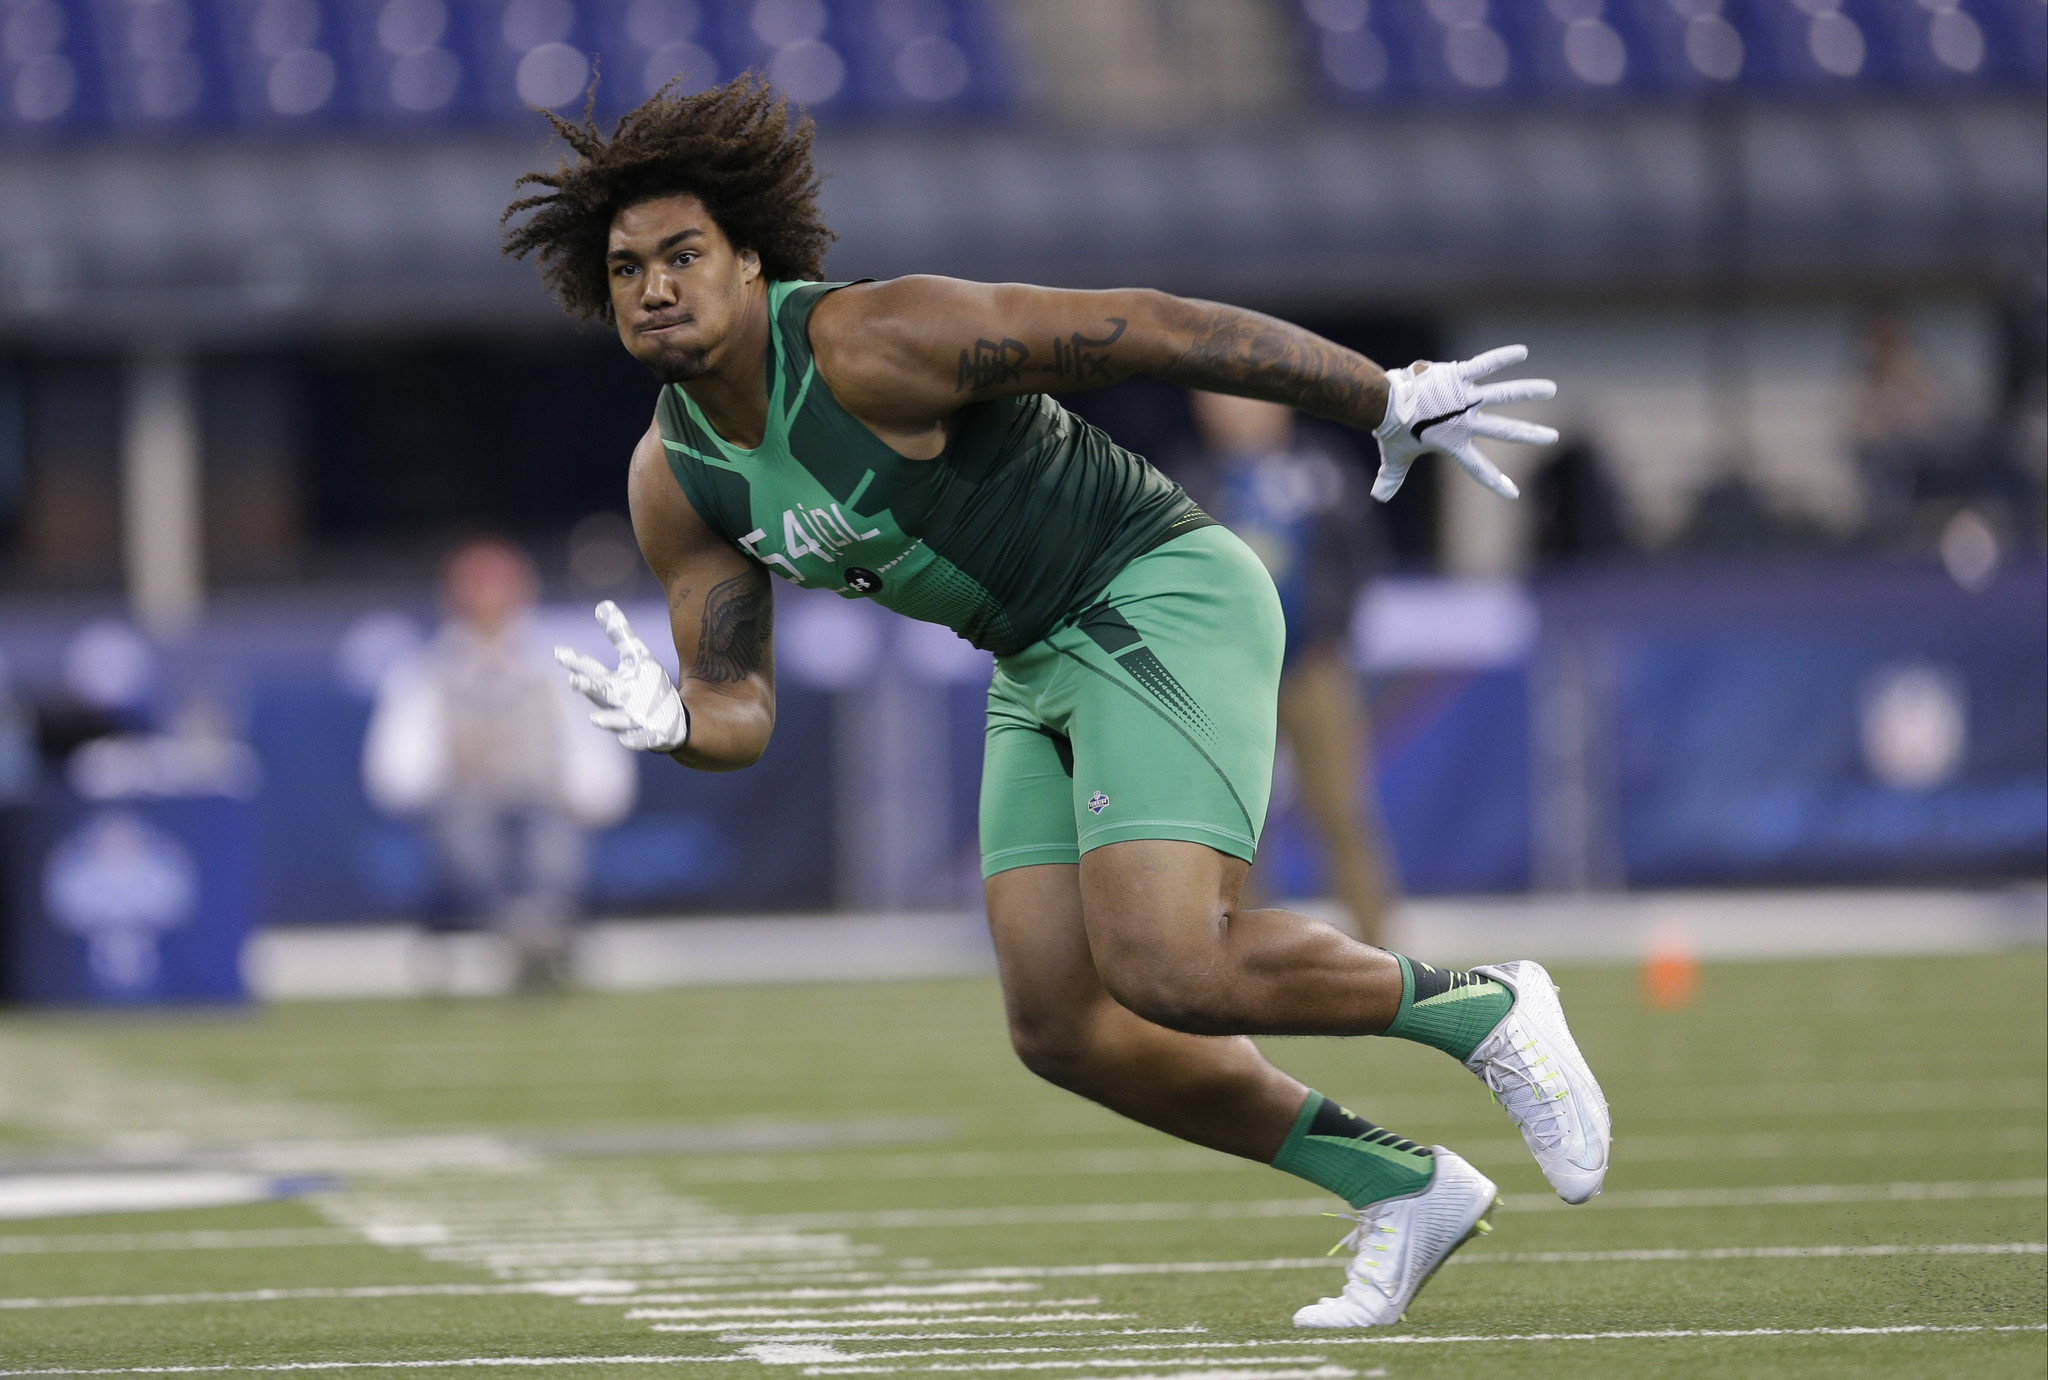 Leonard Williams remains a presence at USC in run up to NFL draft